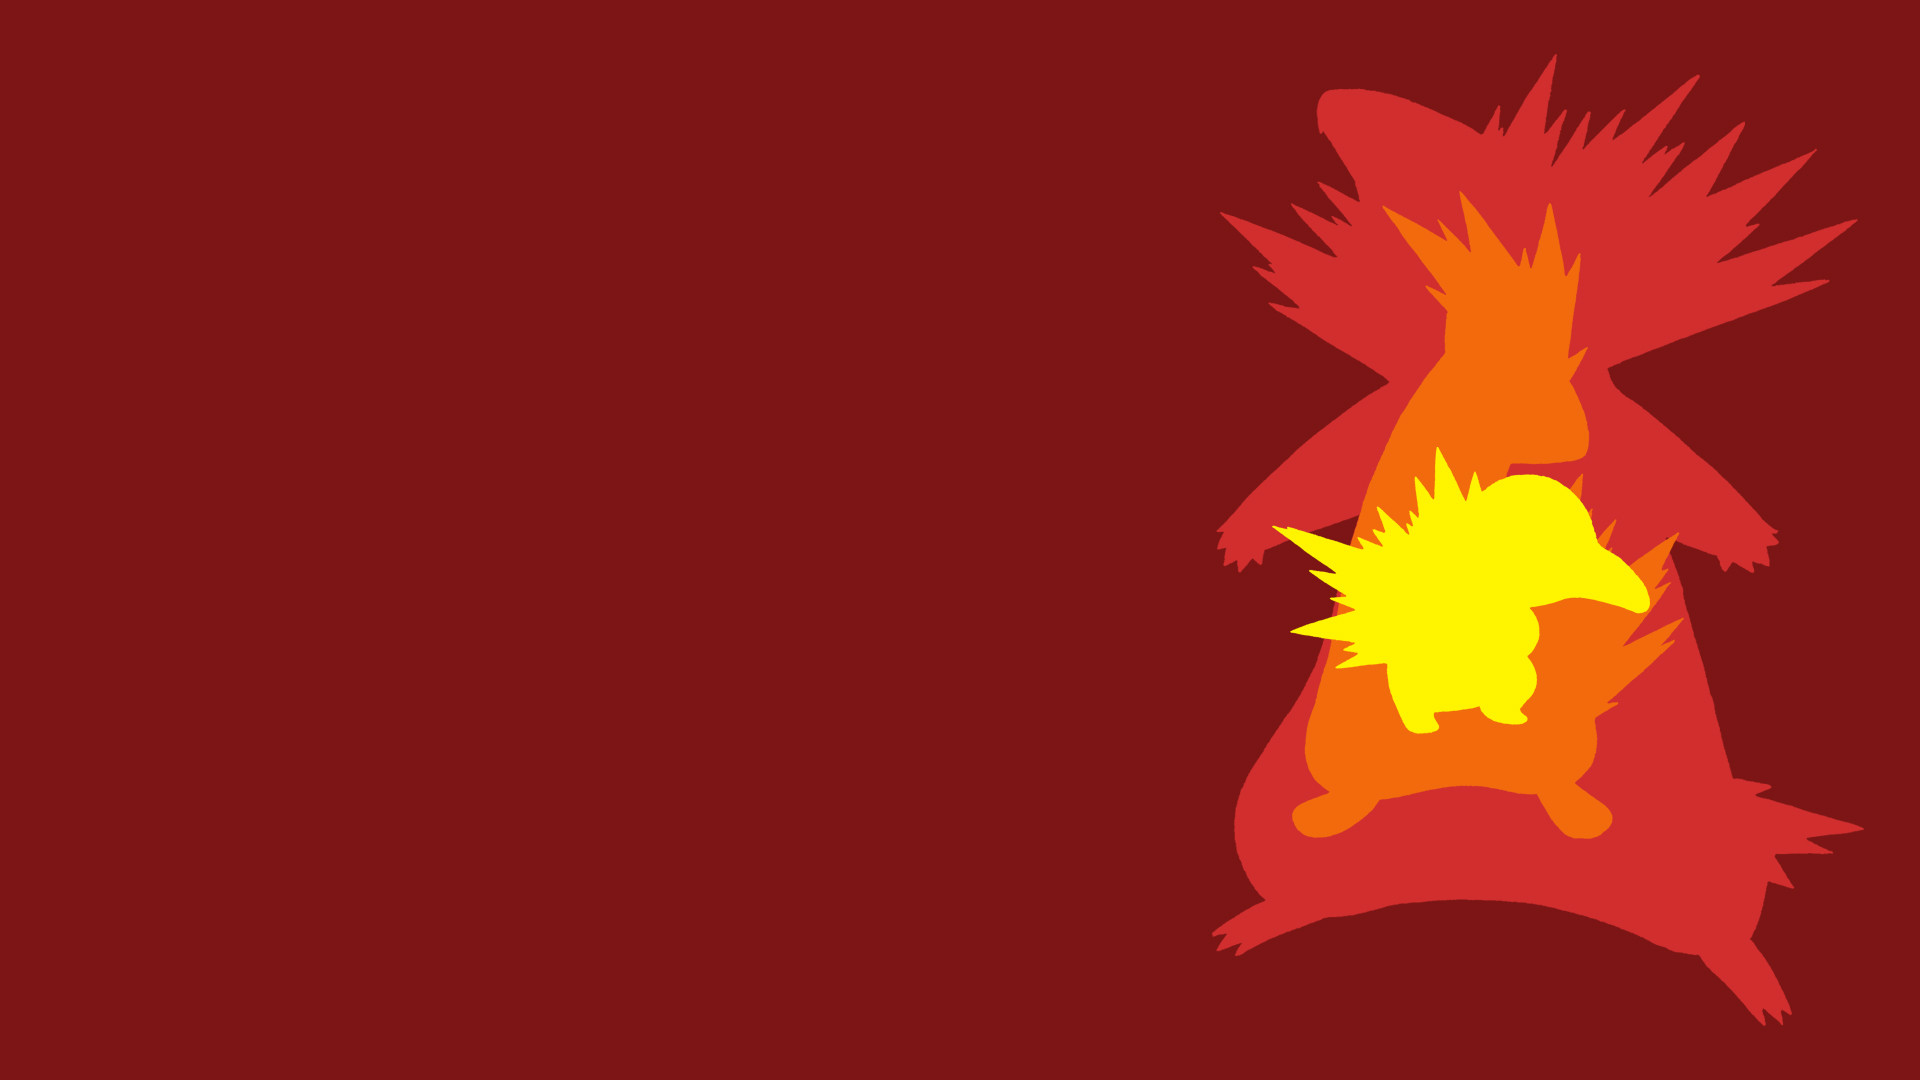 1920x1080 Cyndaquil Evolution Line Minimalist Wallpaper by BrulesCorrupted